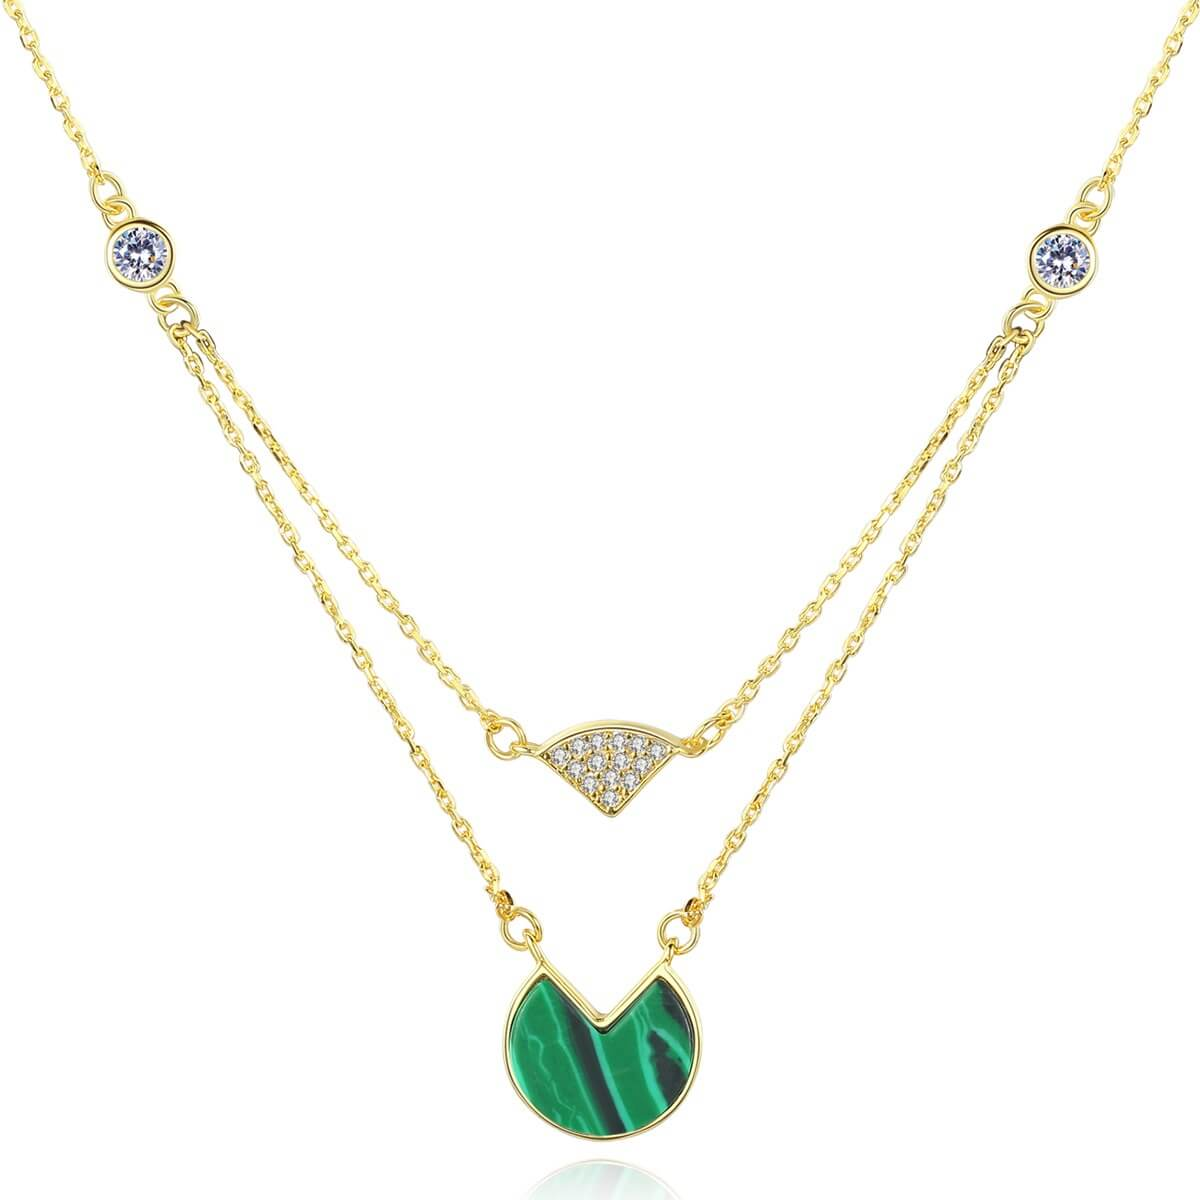 Sterling silver clavicle necklace for ladies with malachite